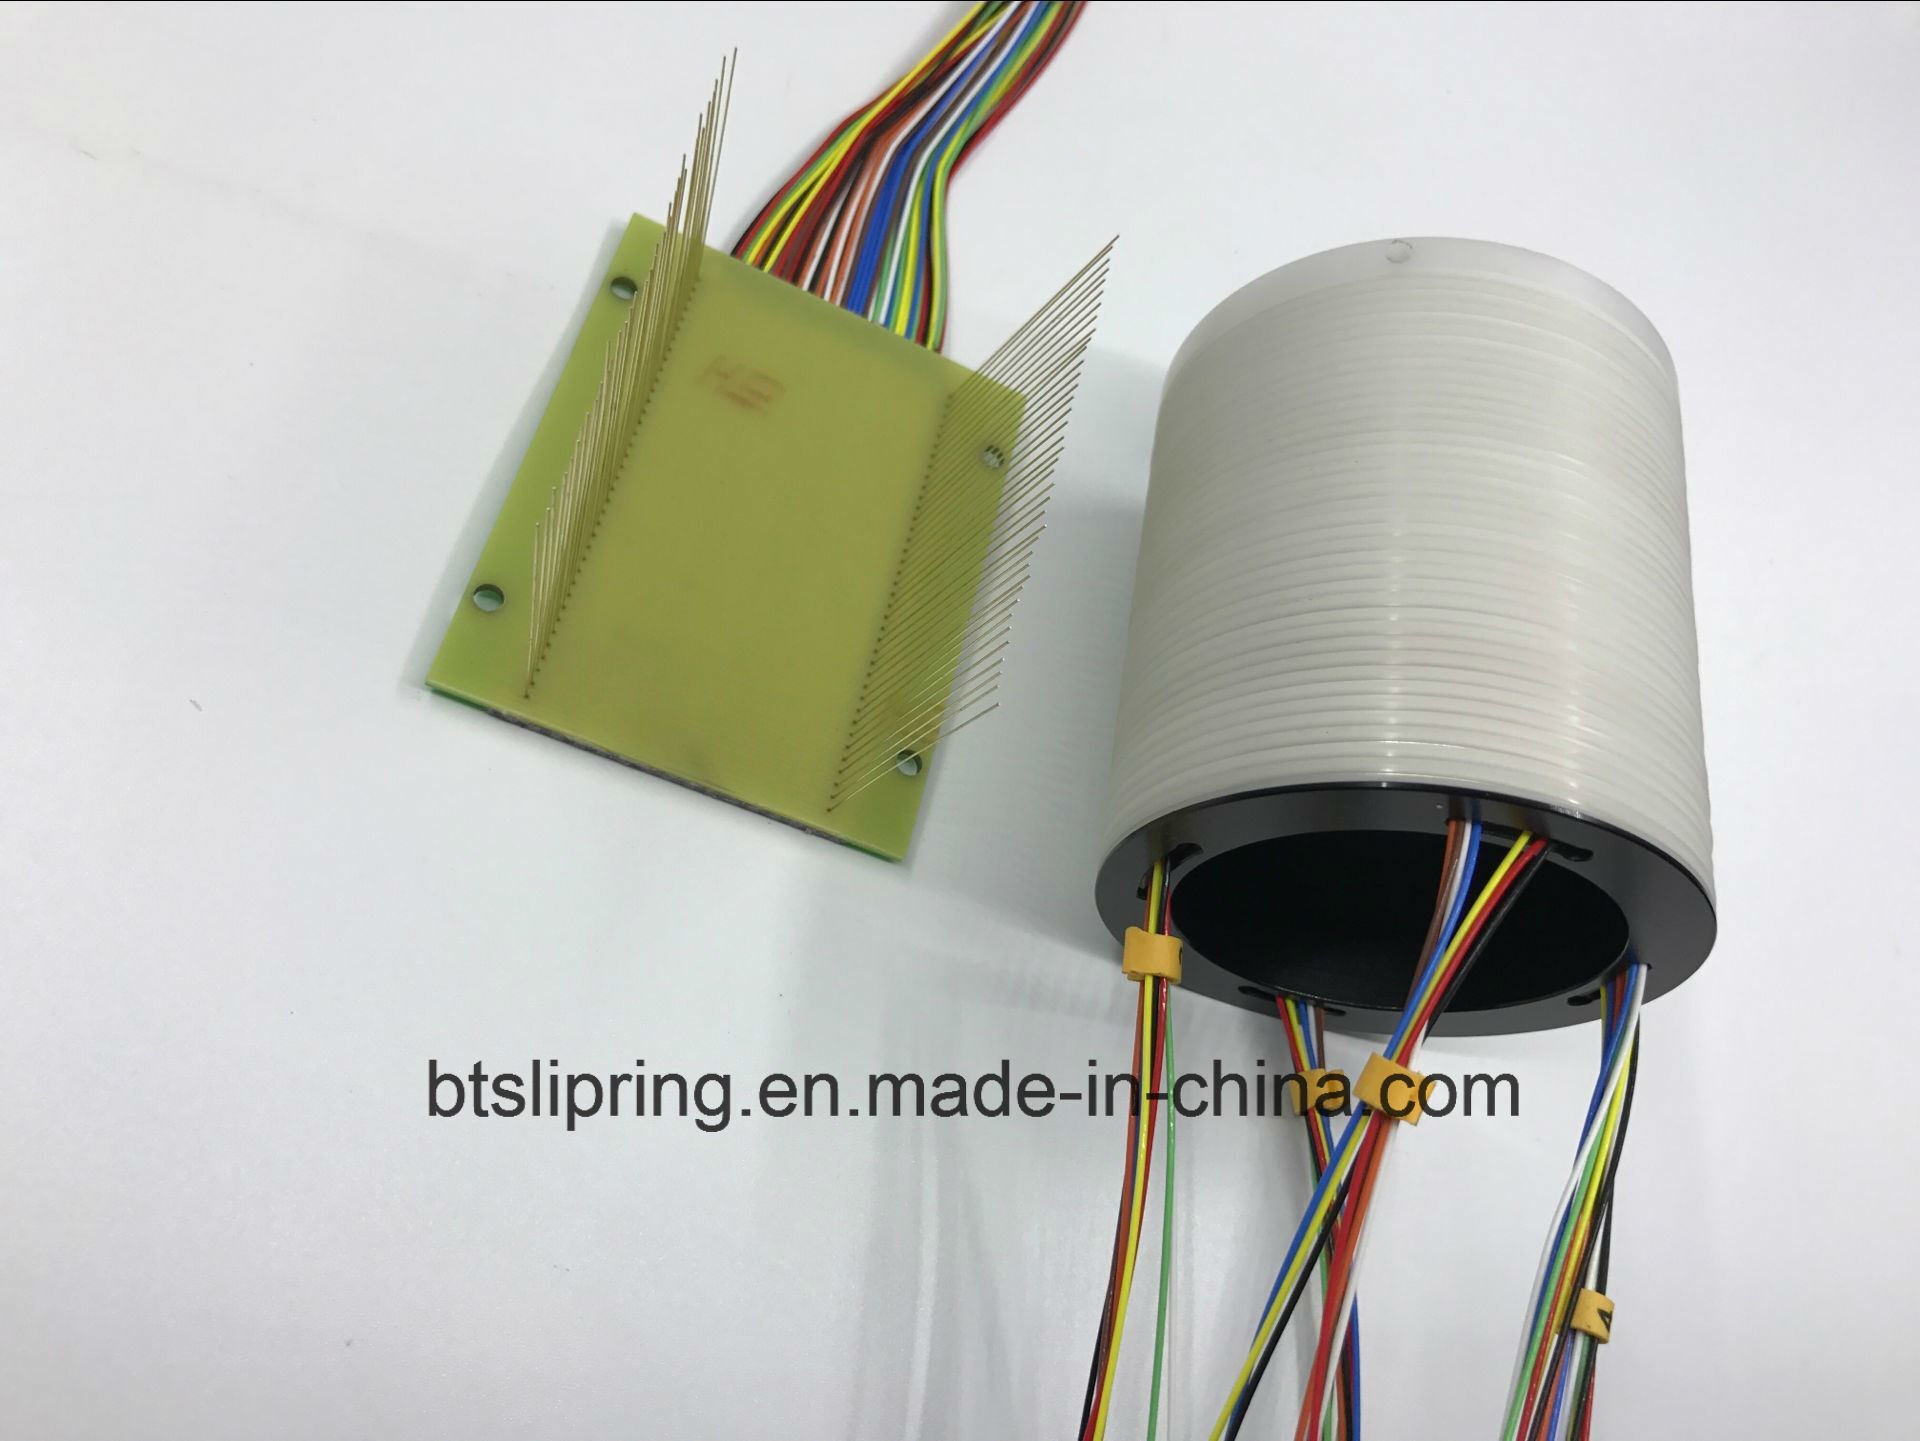 China 38 Circuits Separate Slip Ring with PCB or POM Brush Block ...